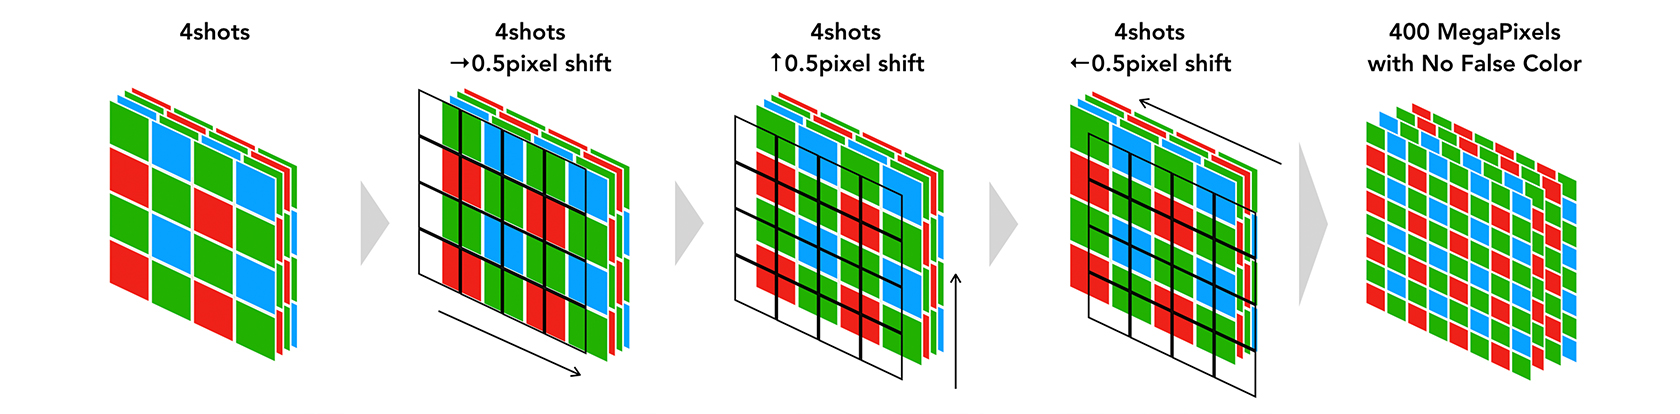 [Image]② The process of quadrupling pixels virtually